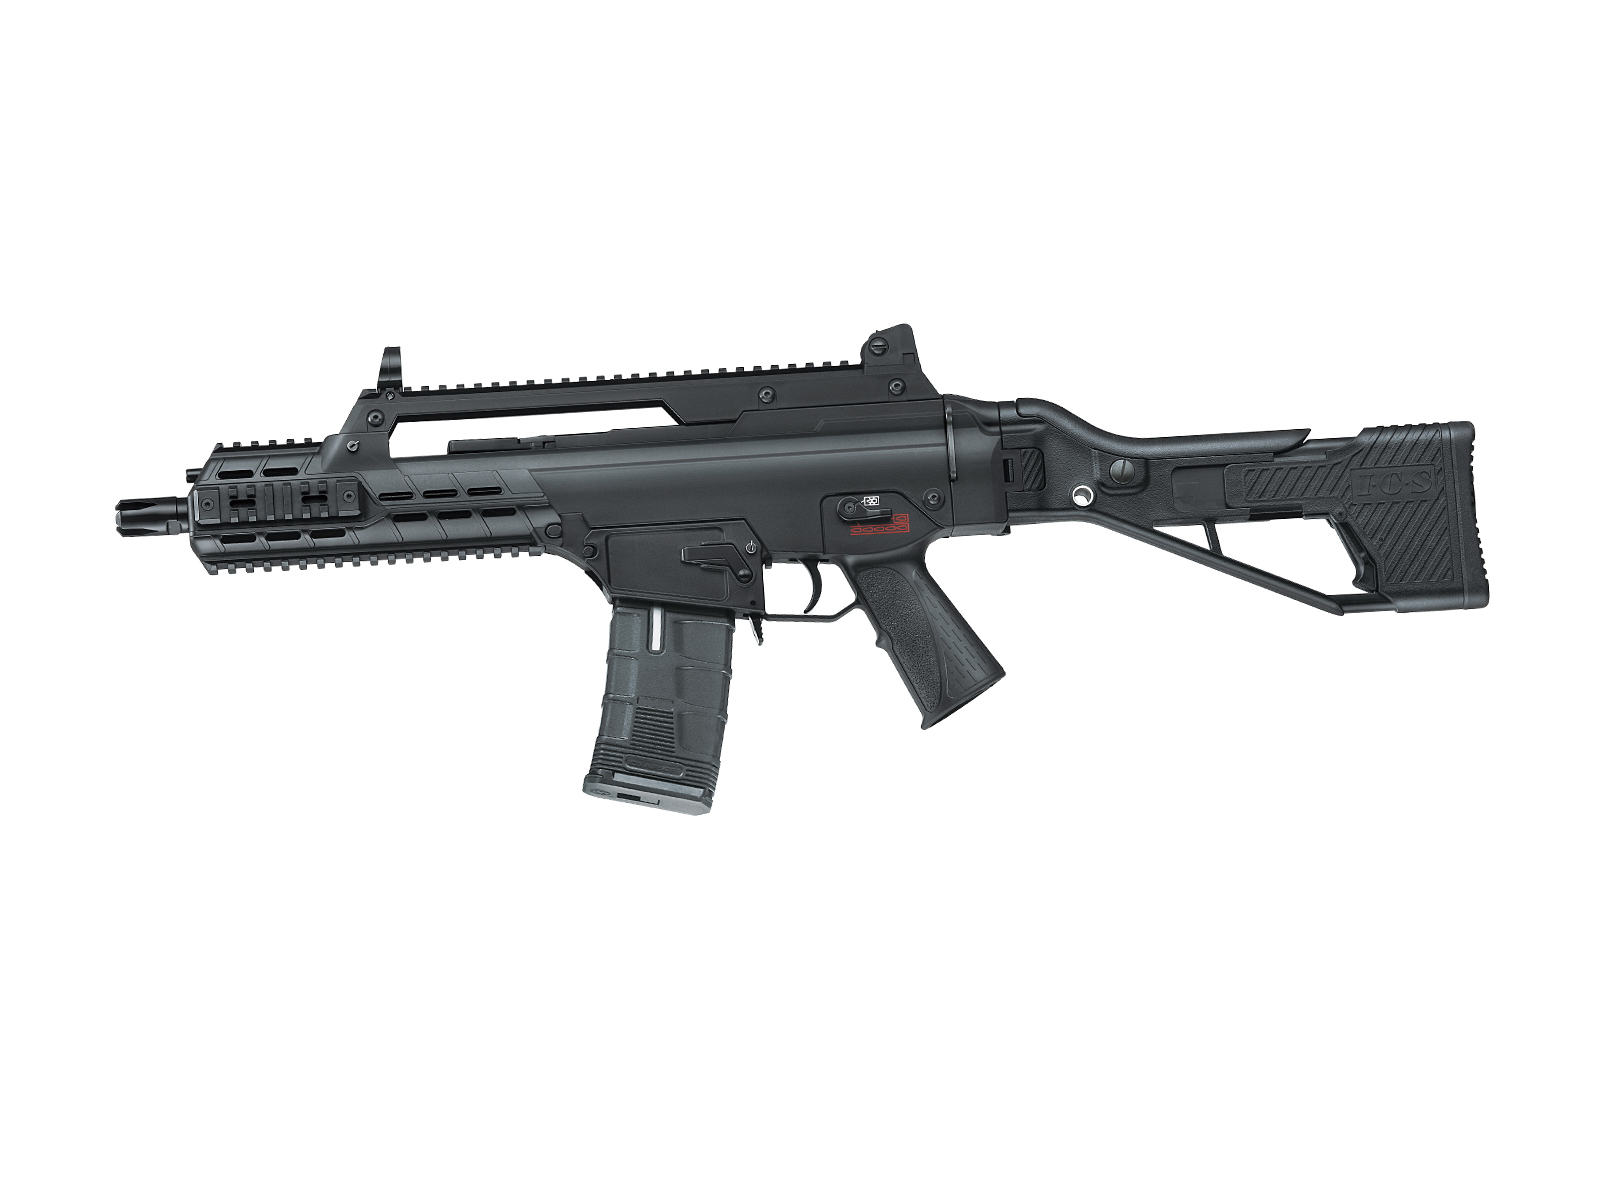 PL AAR COMPACT ASSAULT RIFLE - BLACK